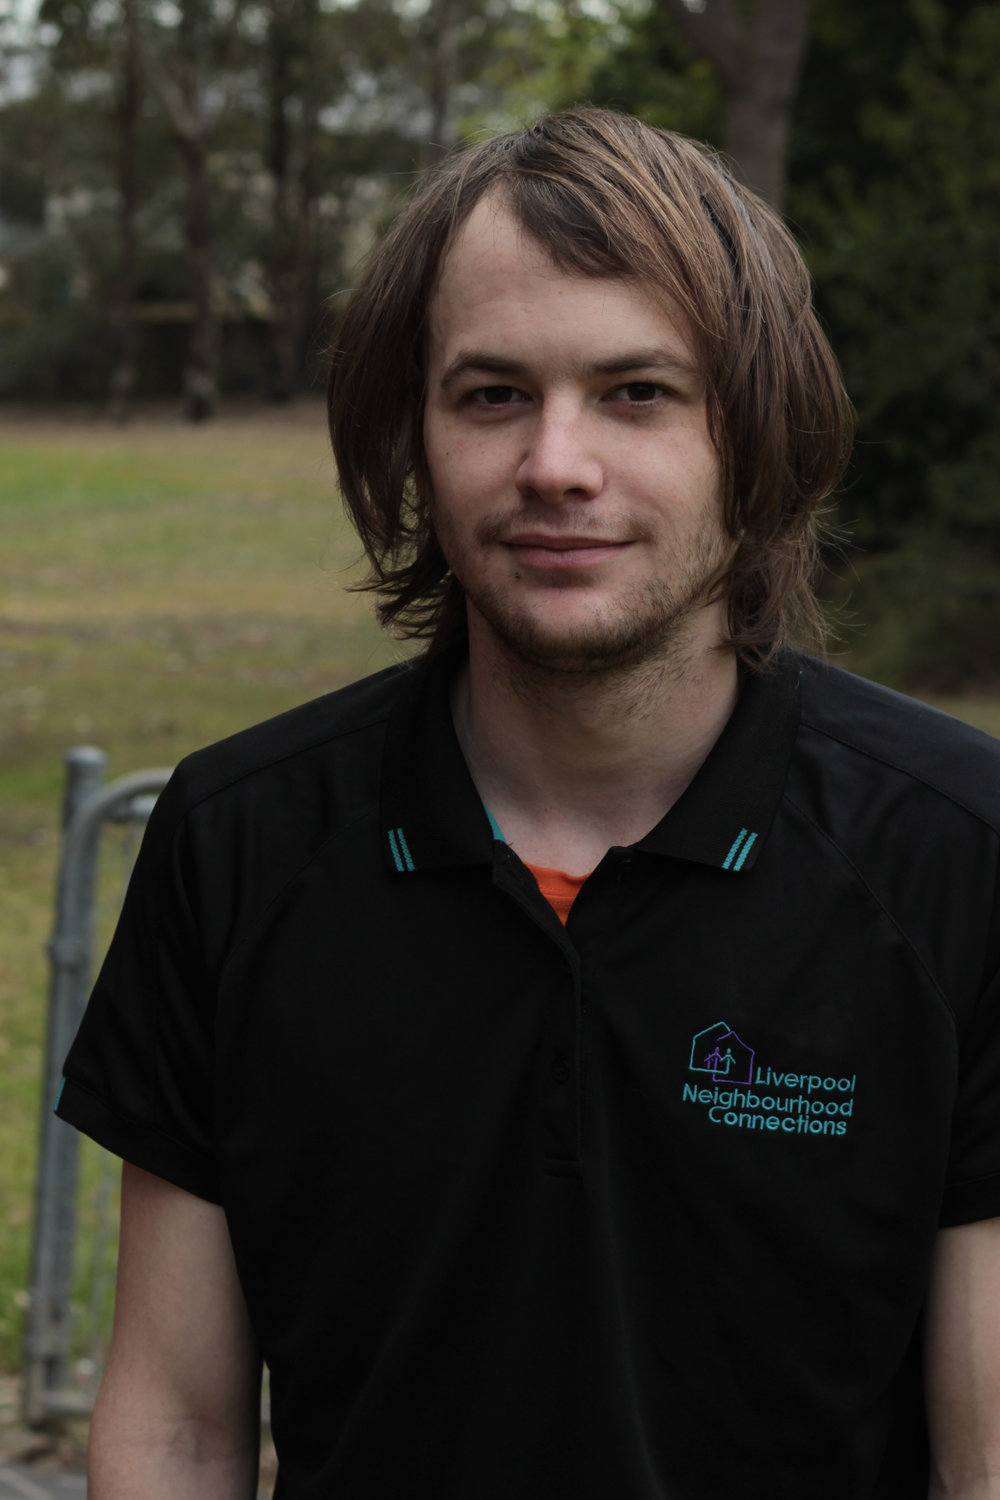 Nathan McGregor, Social Enterprise Worker